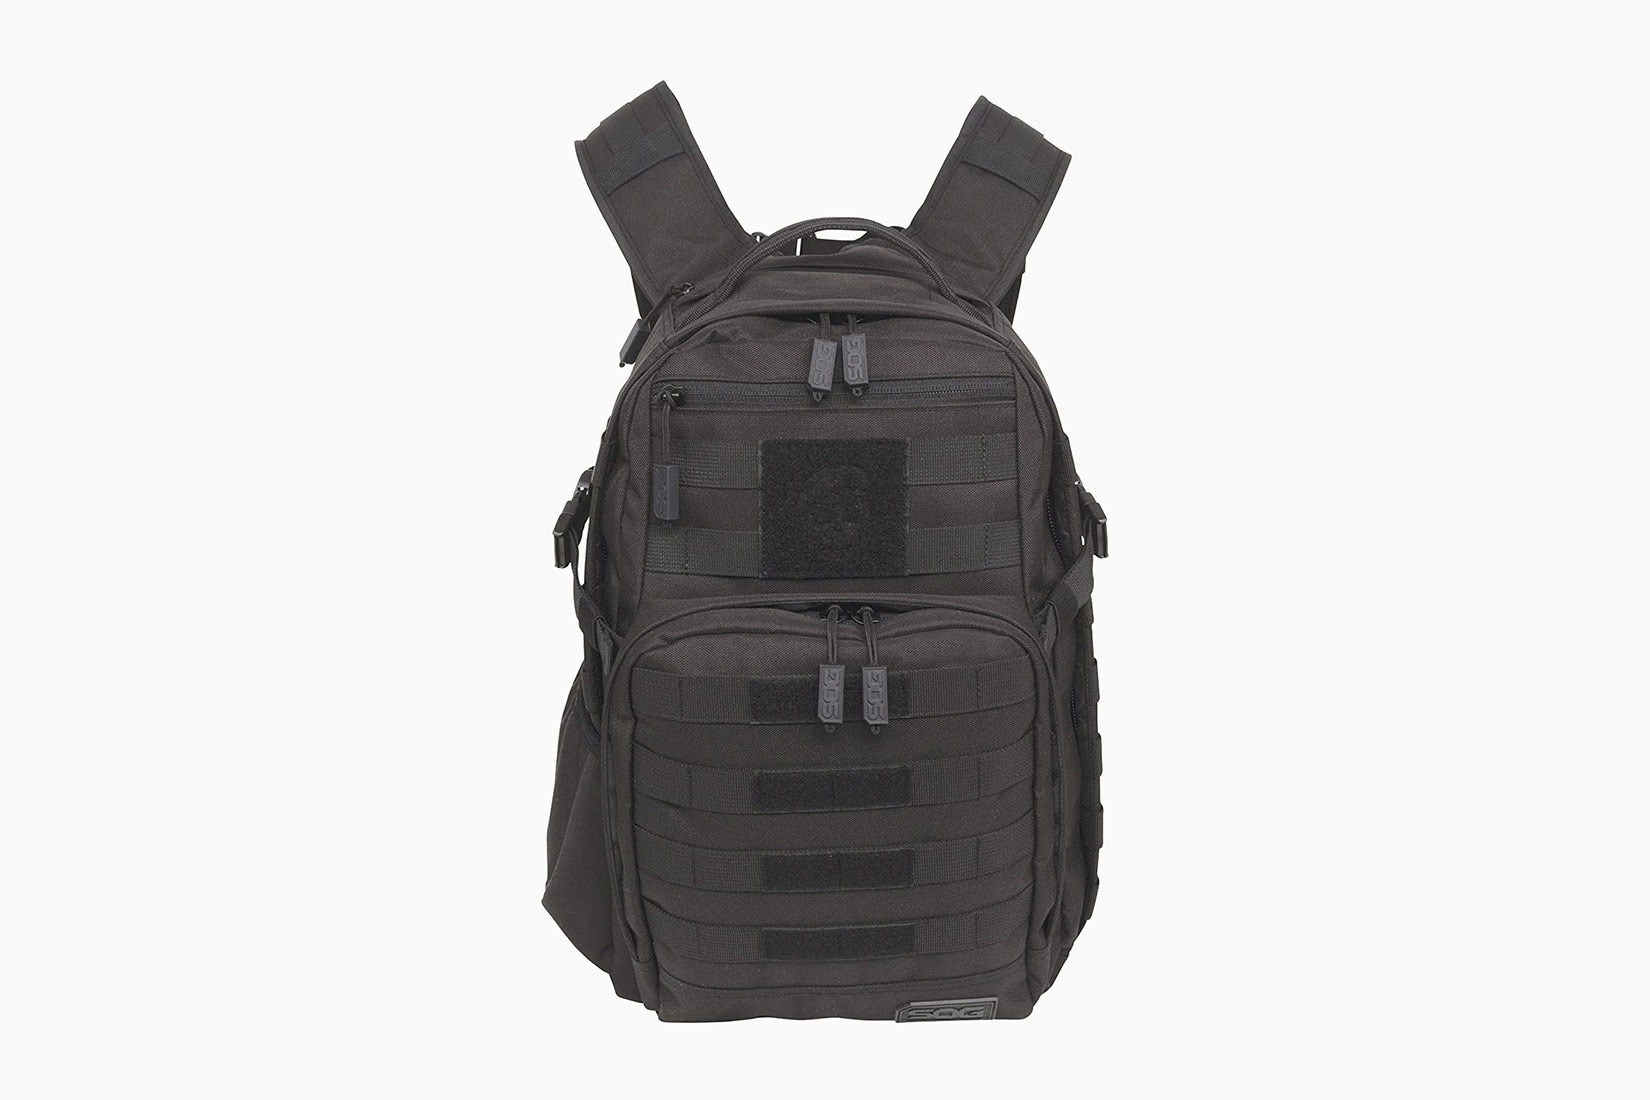 best tactical backpack SOG ninja - Luxe Digital